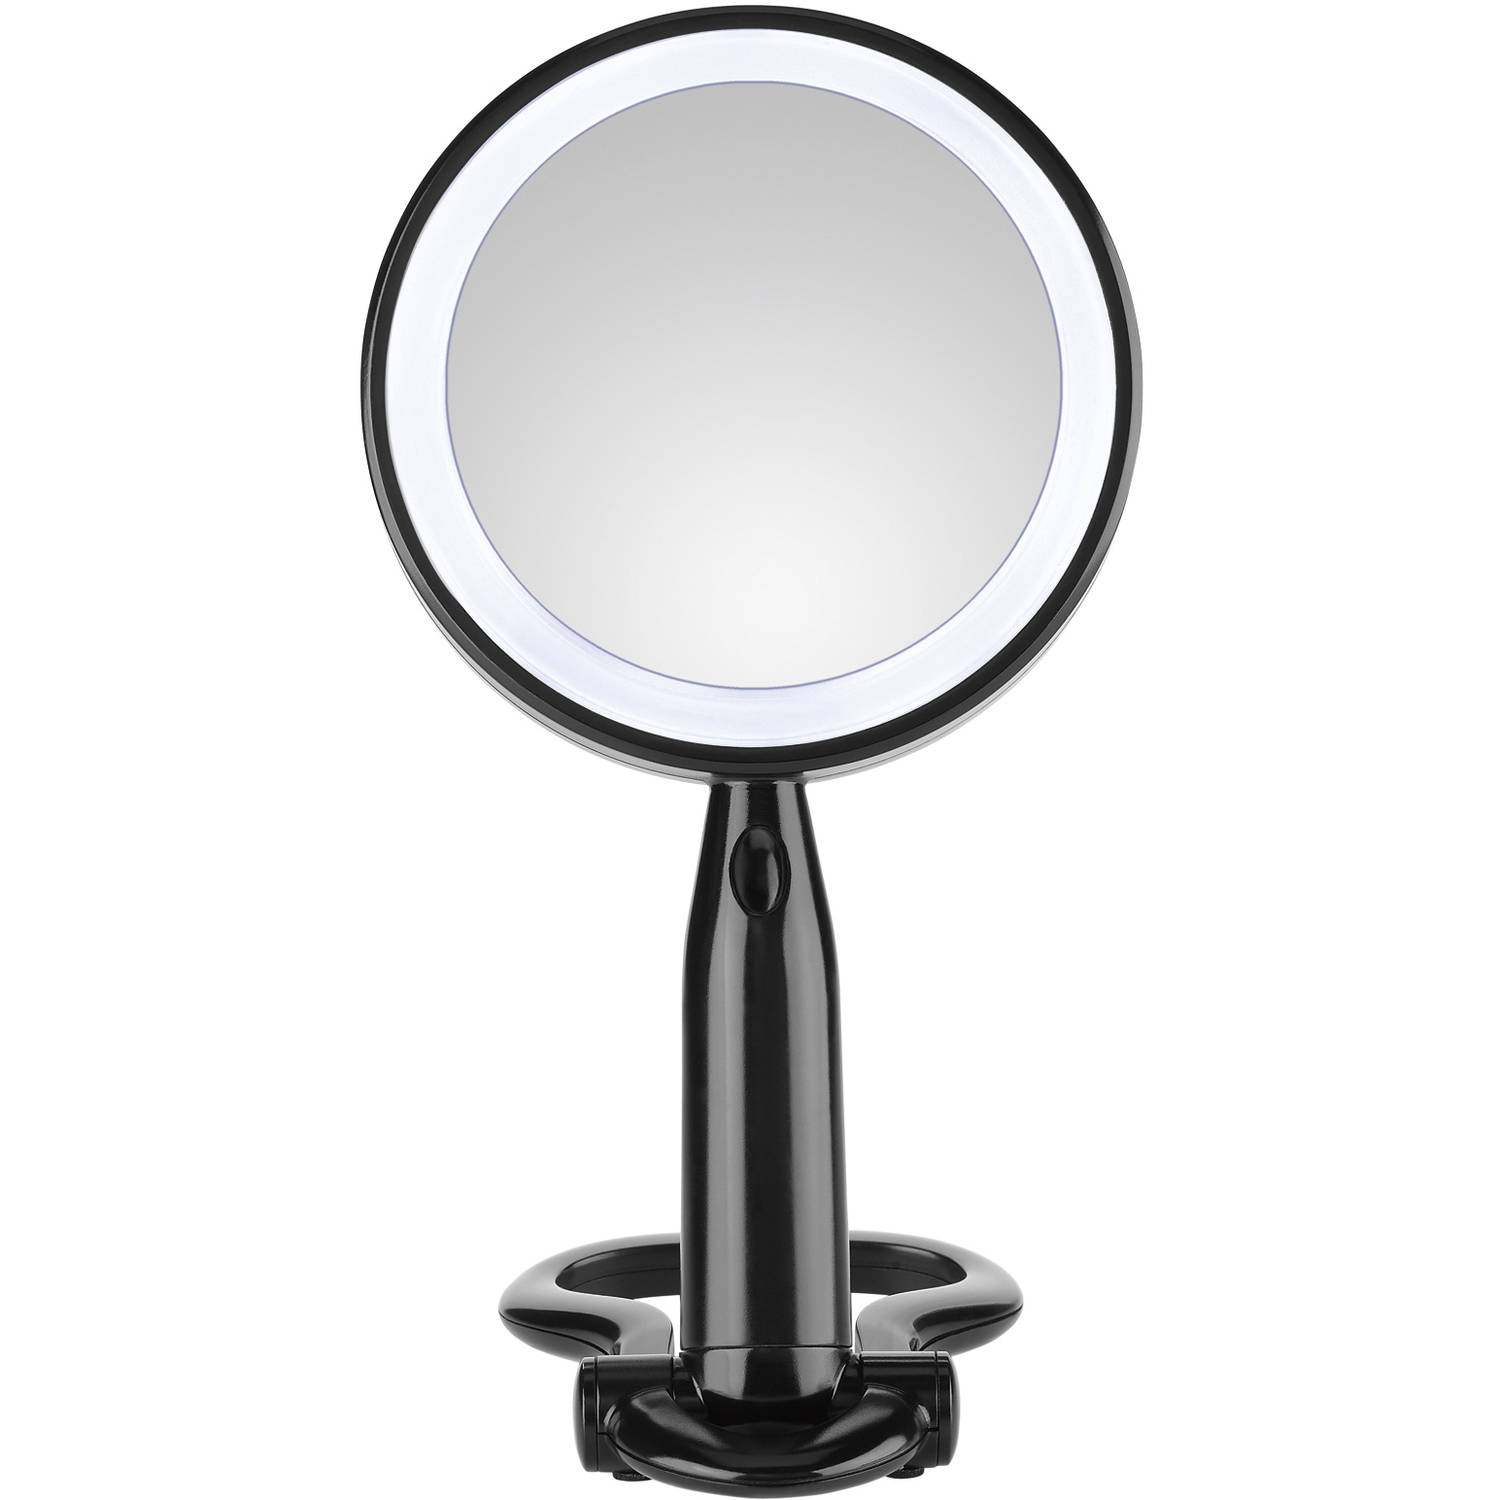 Miraculous conair makeup mirror for furniture accessories ideas with conair double-sided lighted makeup mirror